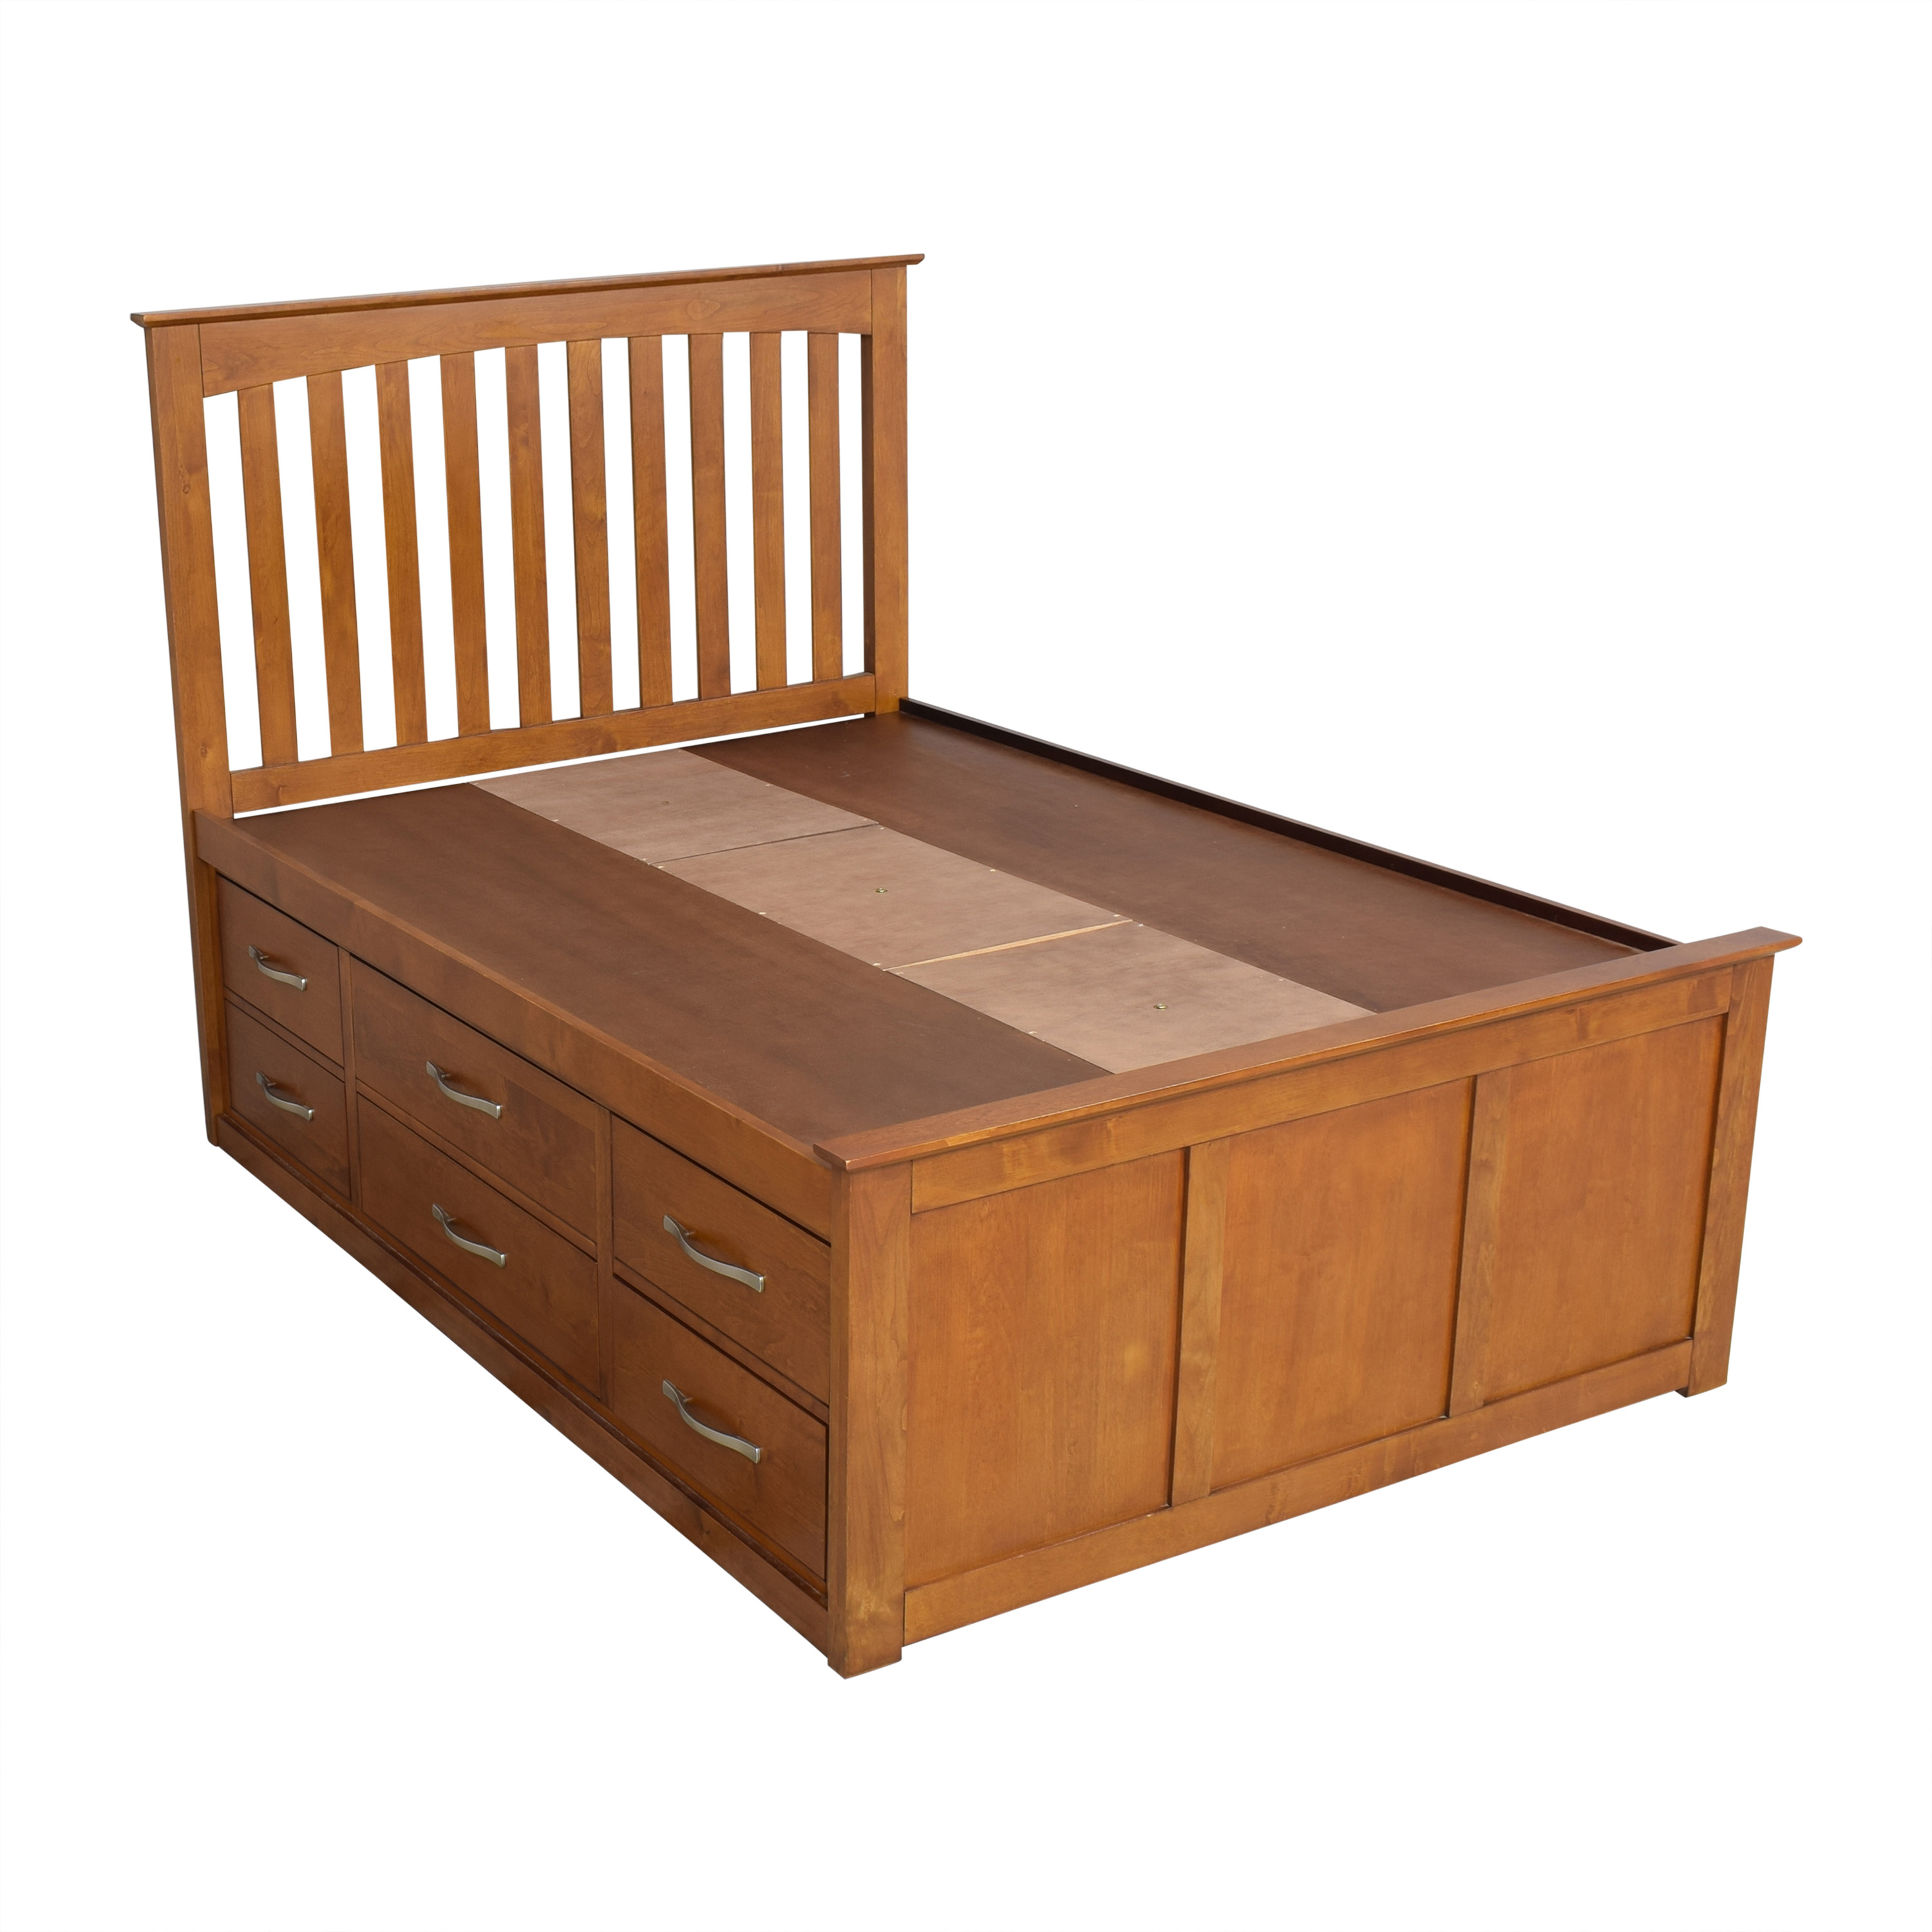 buy Raymour & Flanigan Raymour & Flanigan Captain's Full Bed online